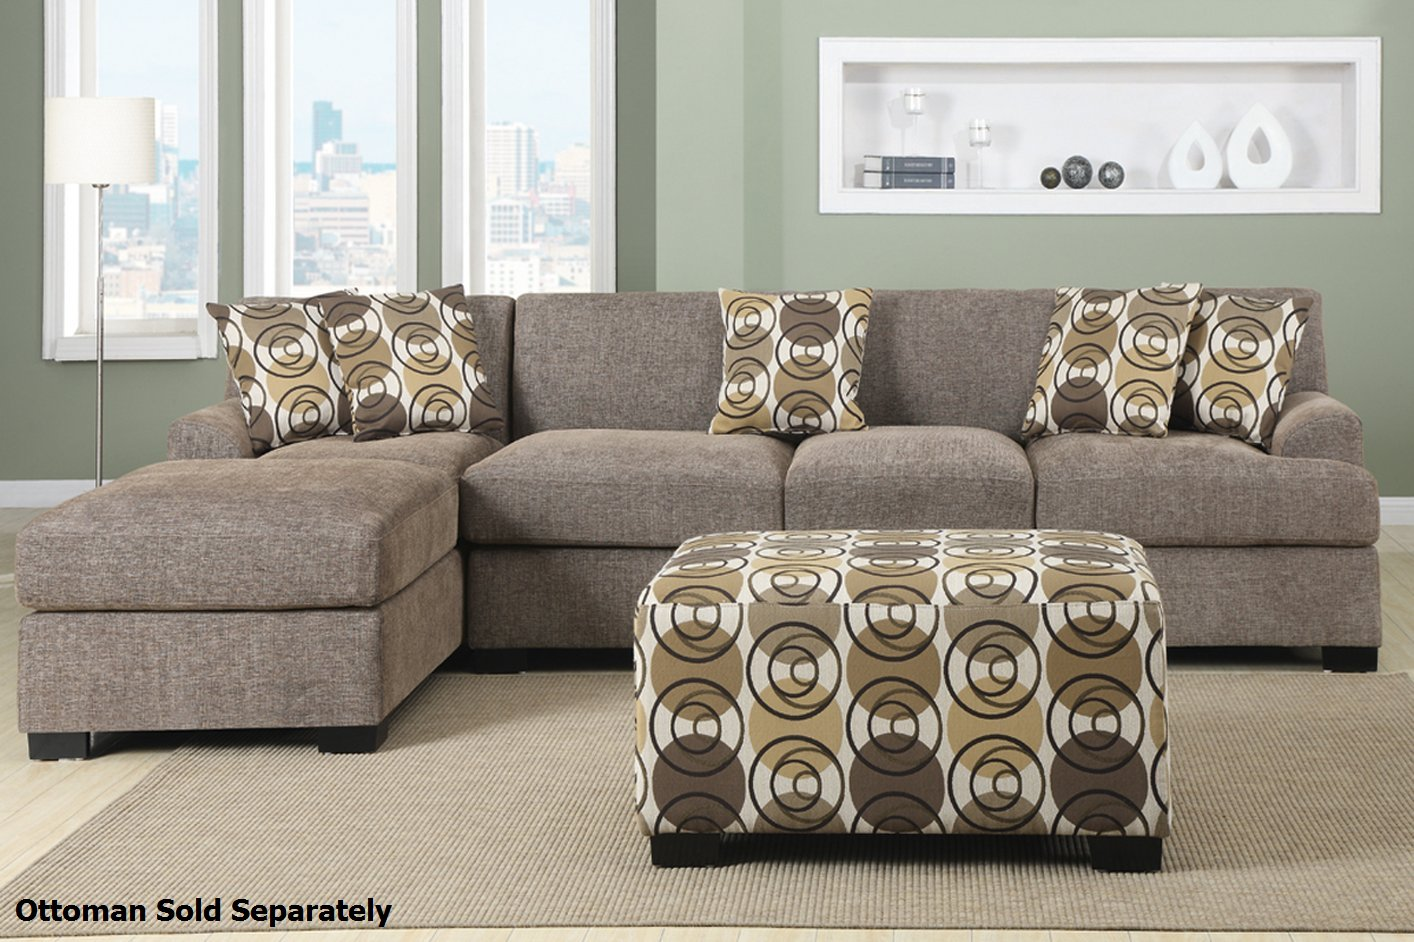 Poundex Montreal III F7448 F7450 Beige Fabric Sectional  : montereal slate reversible sectional sofa 32 from www.stealasofa.com size 1414 x 942 jpeg 256kB